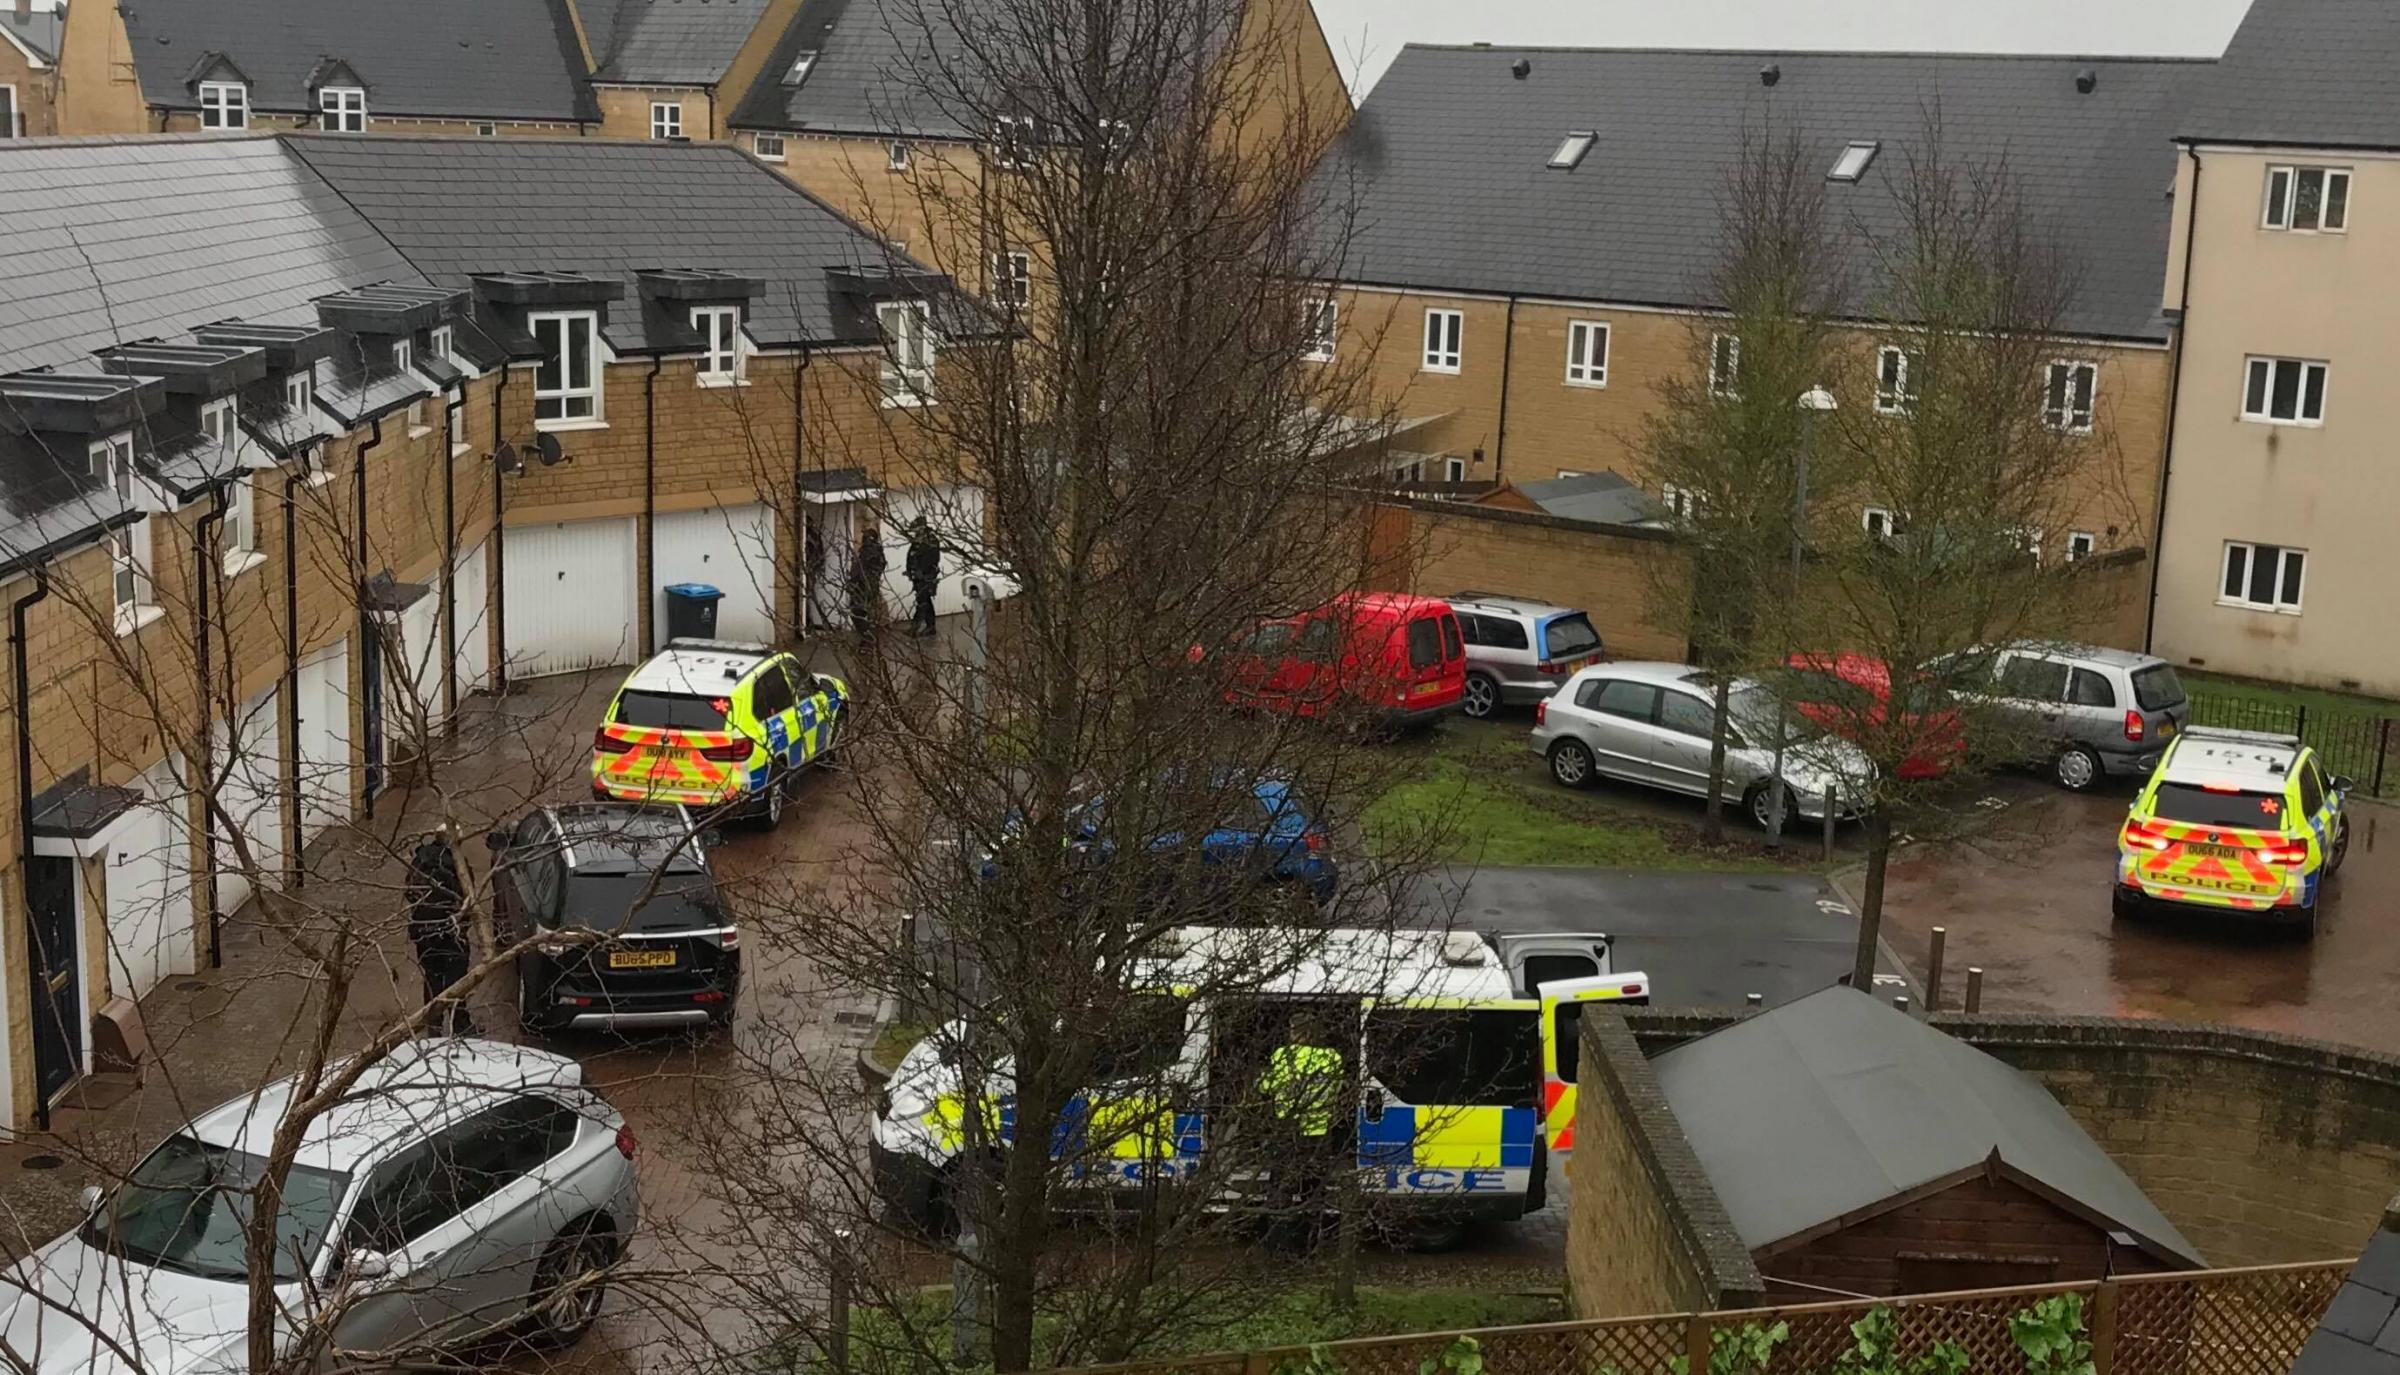 The police operation on Shilton Park, Carterton, on Friday Picture: Jon Berry